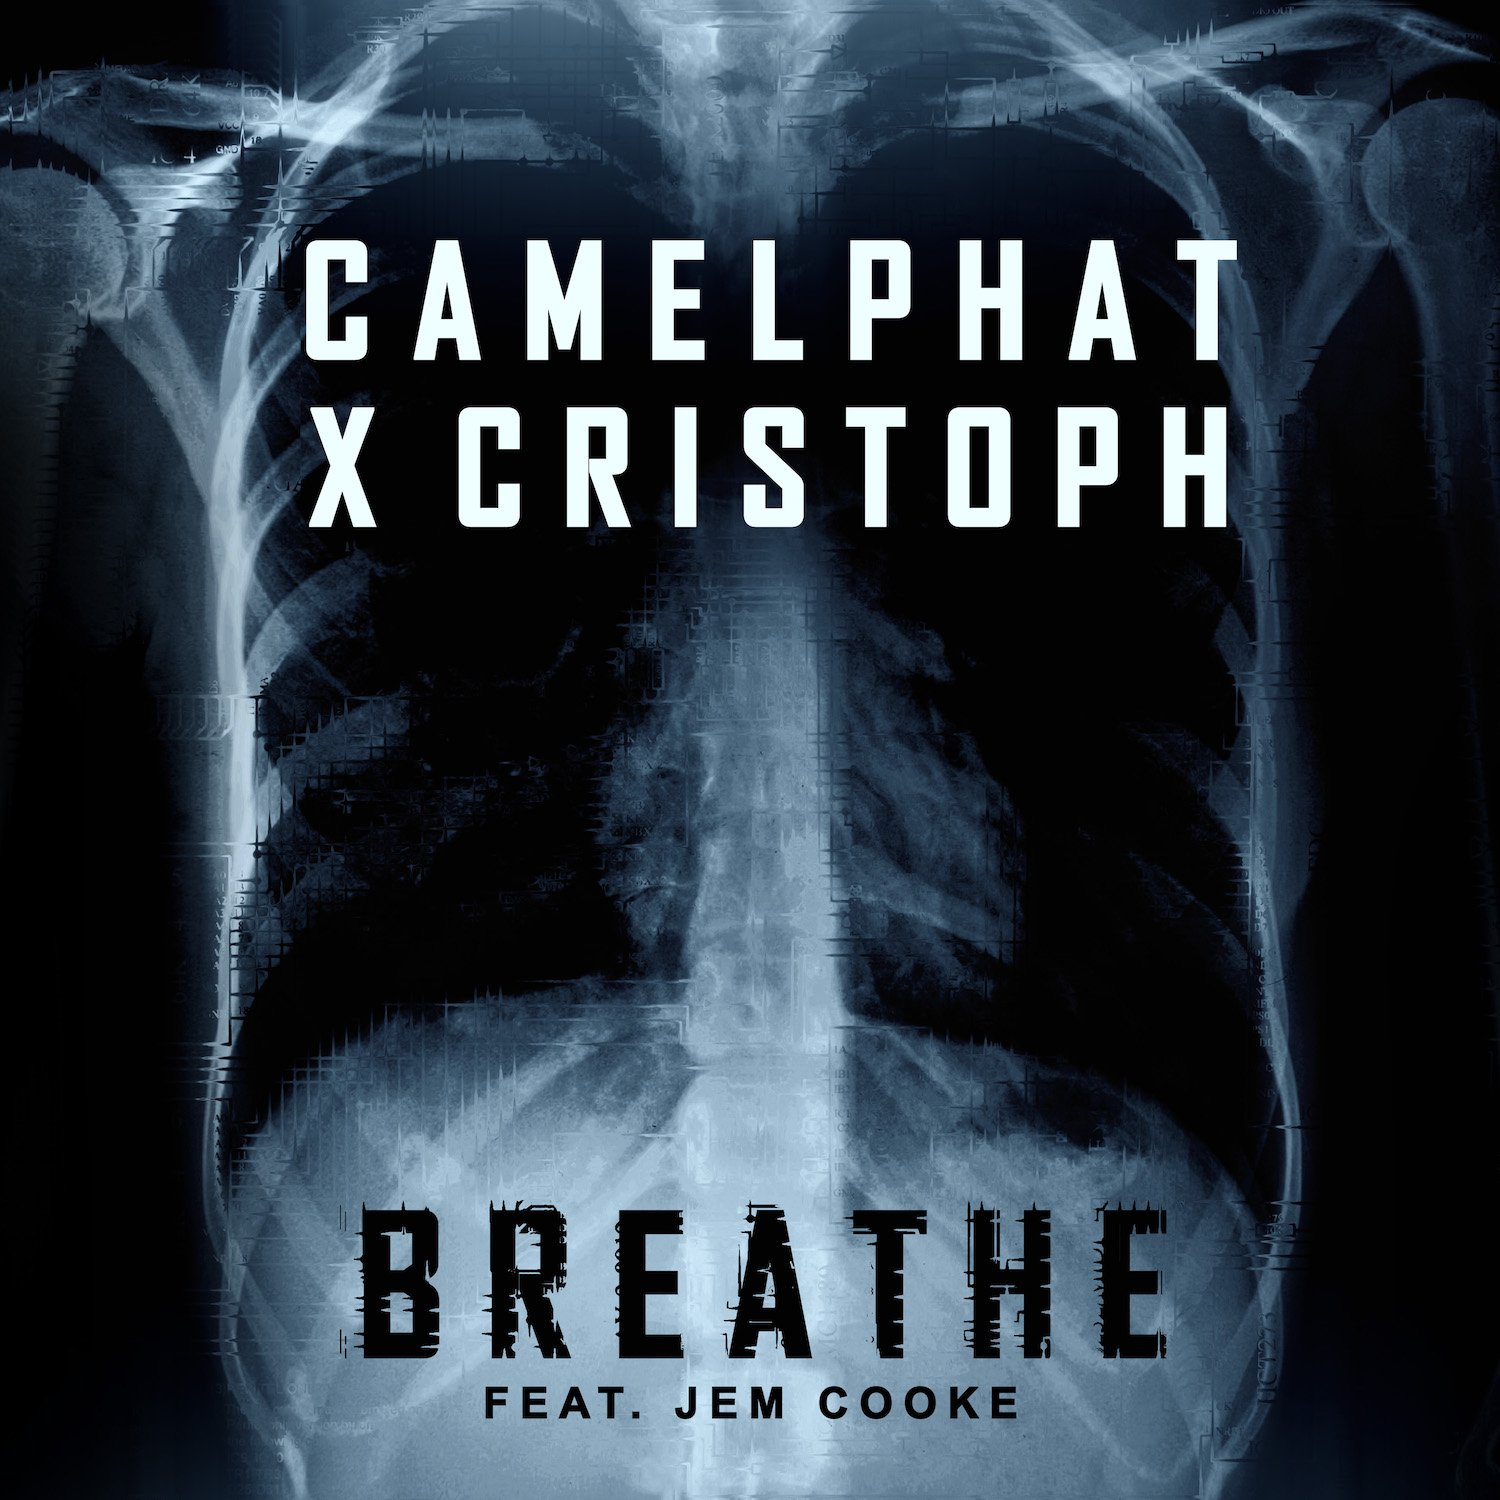 PRYP005 - CamelPhat X Cristoph - Breathe Feat. Jem Cooke 3000x3000